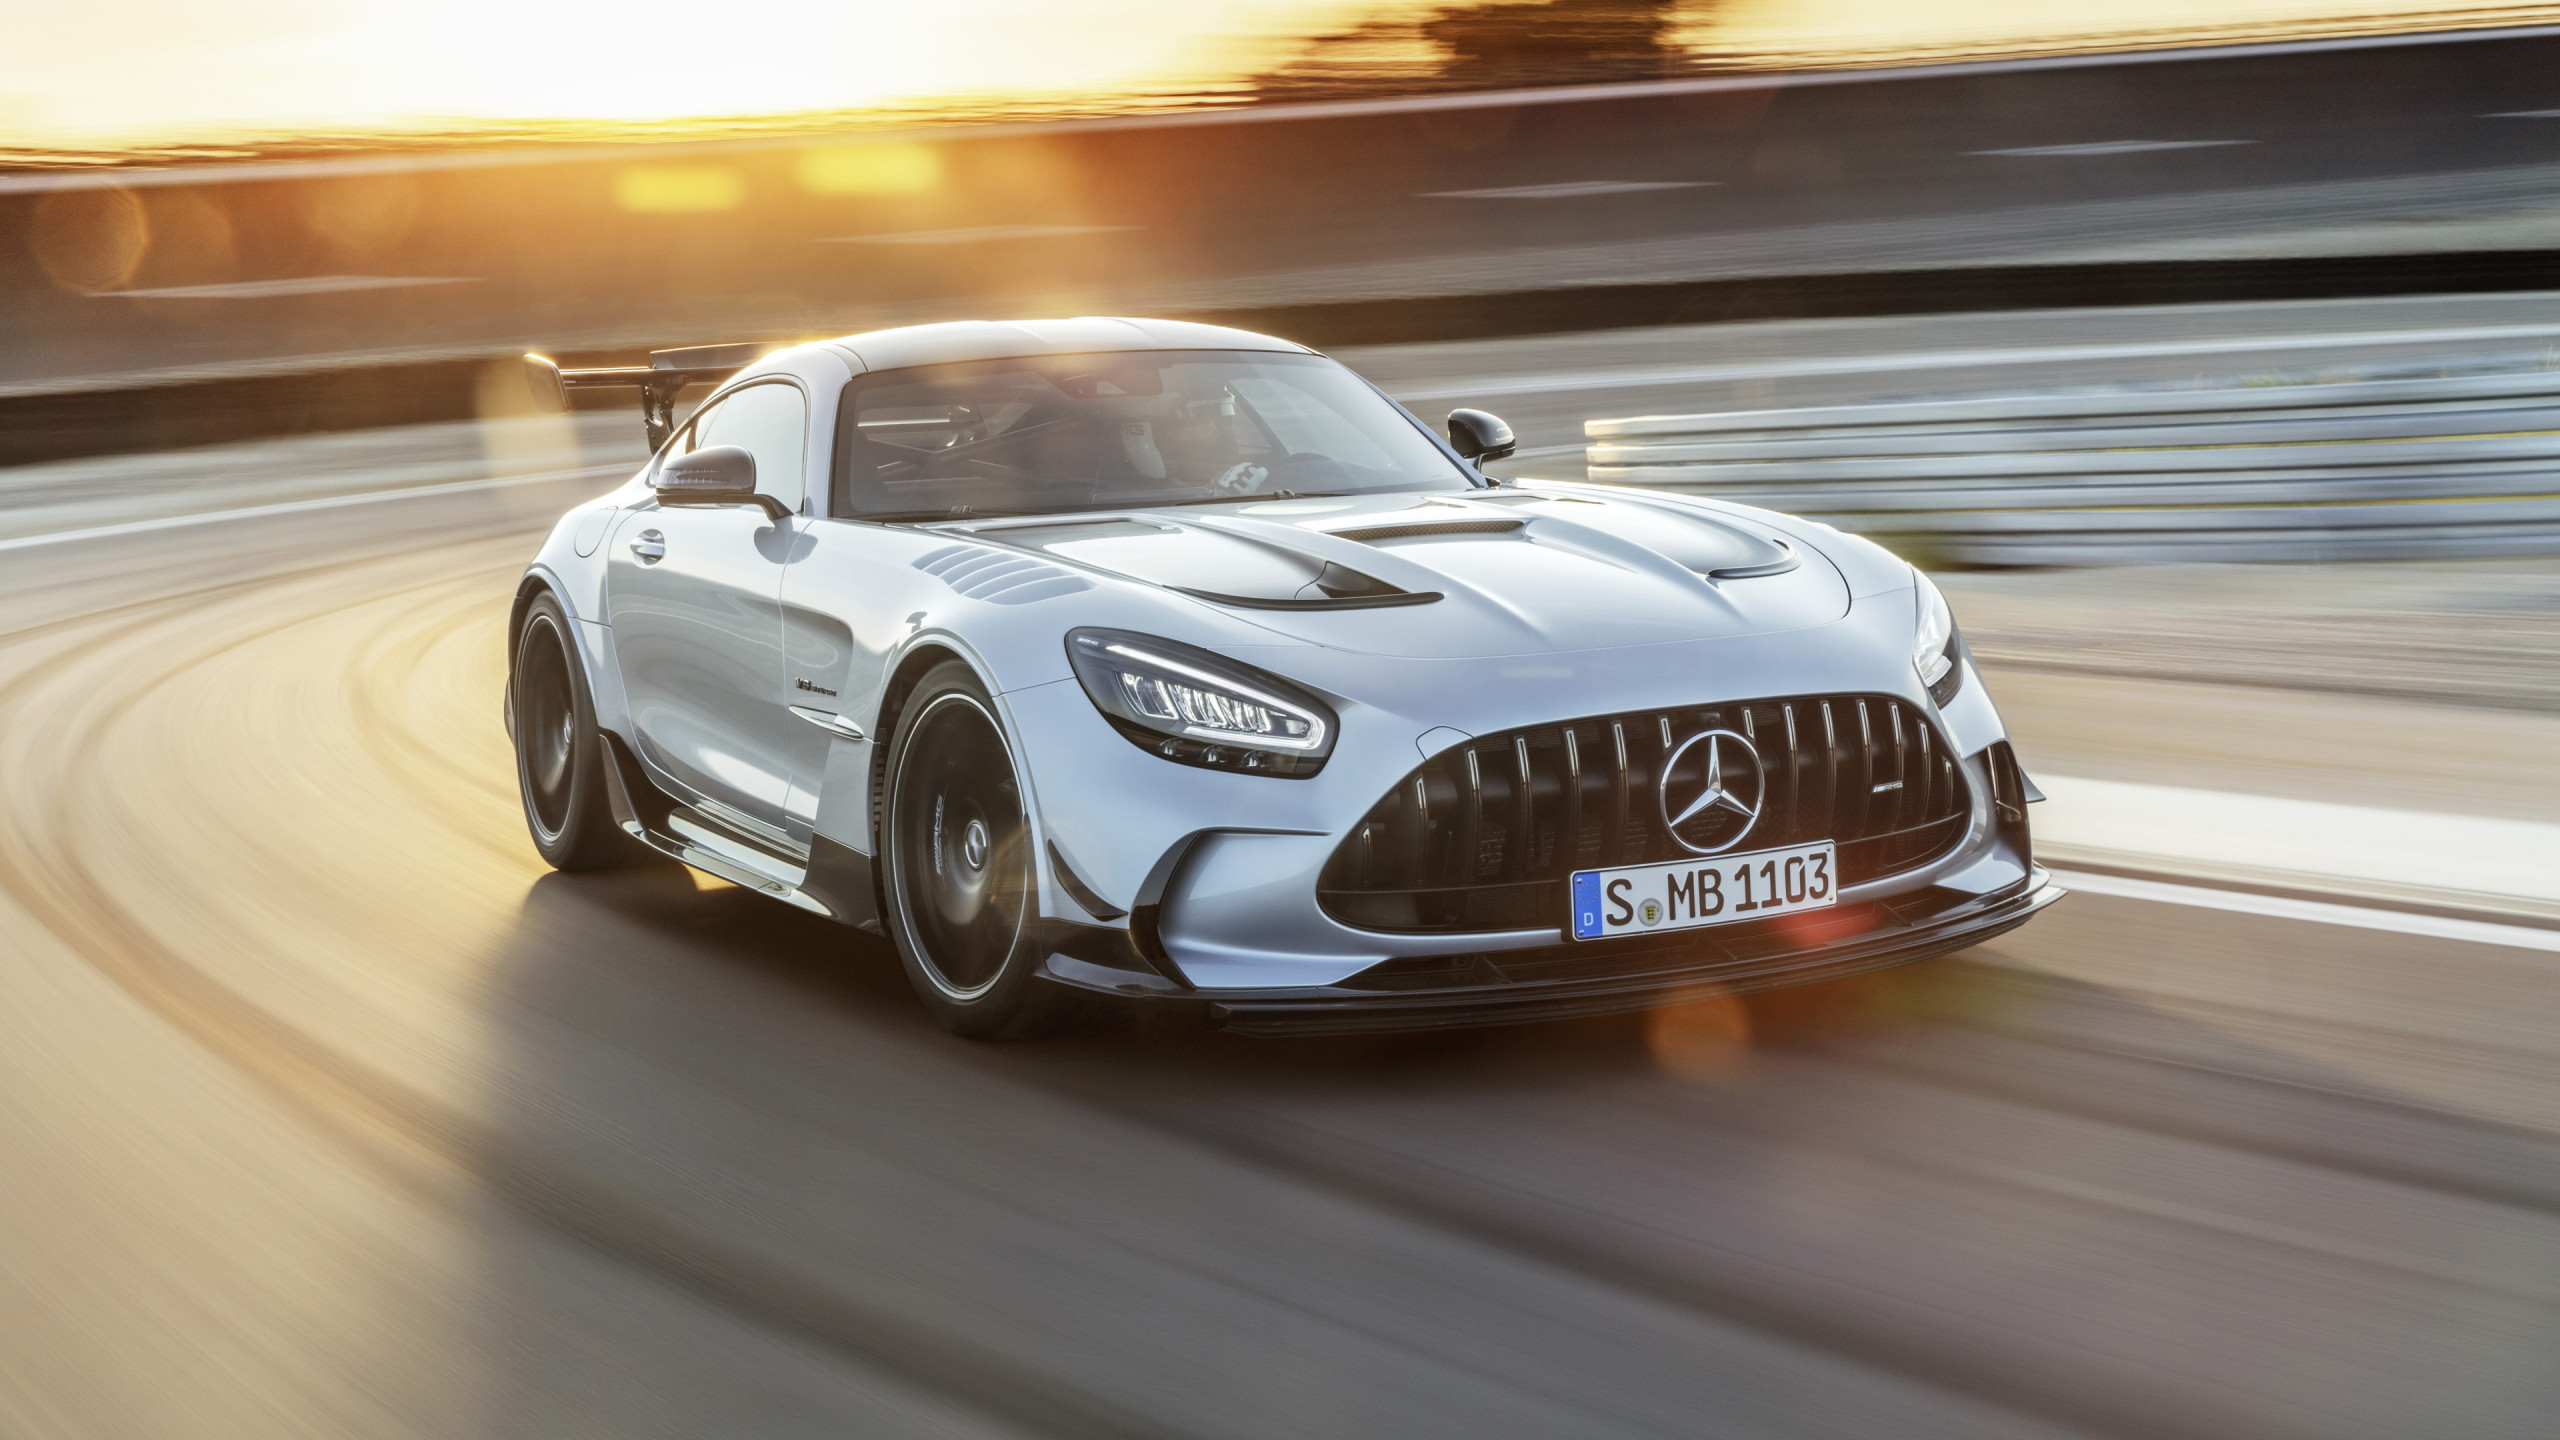 Mercedes AMG GT Black Series 2020 wallpaper 2560x1440